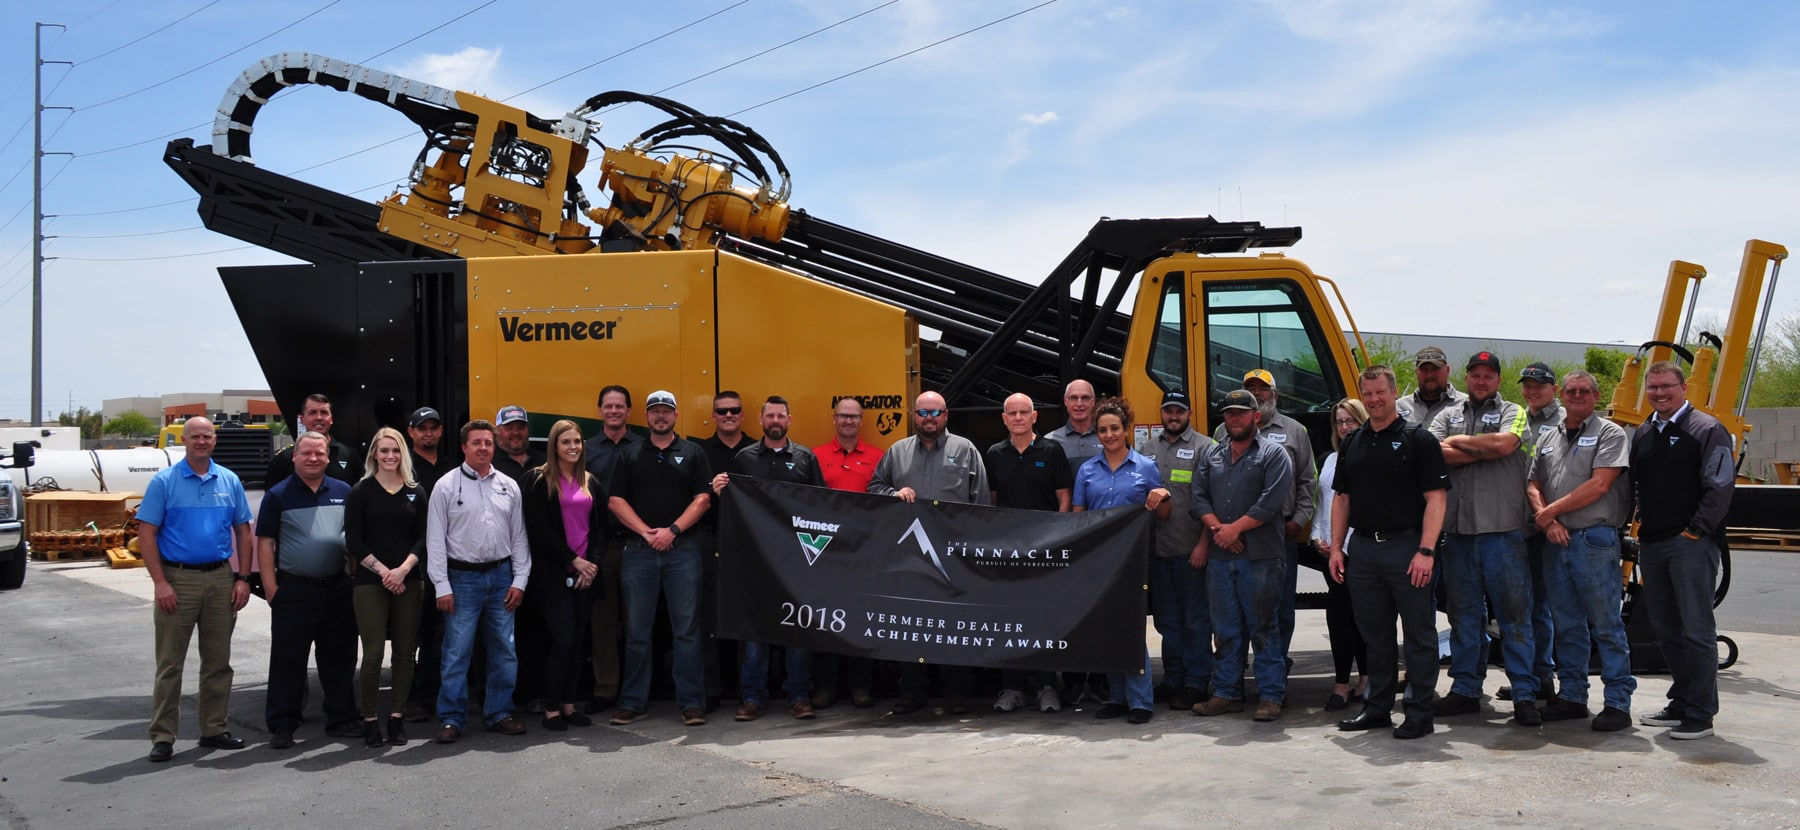 Iconic Brand Vermeer Southwest Makes Game-Changing Move Toward Productivity